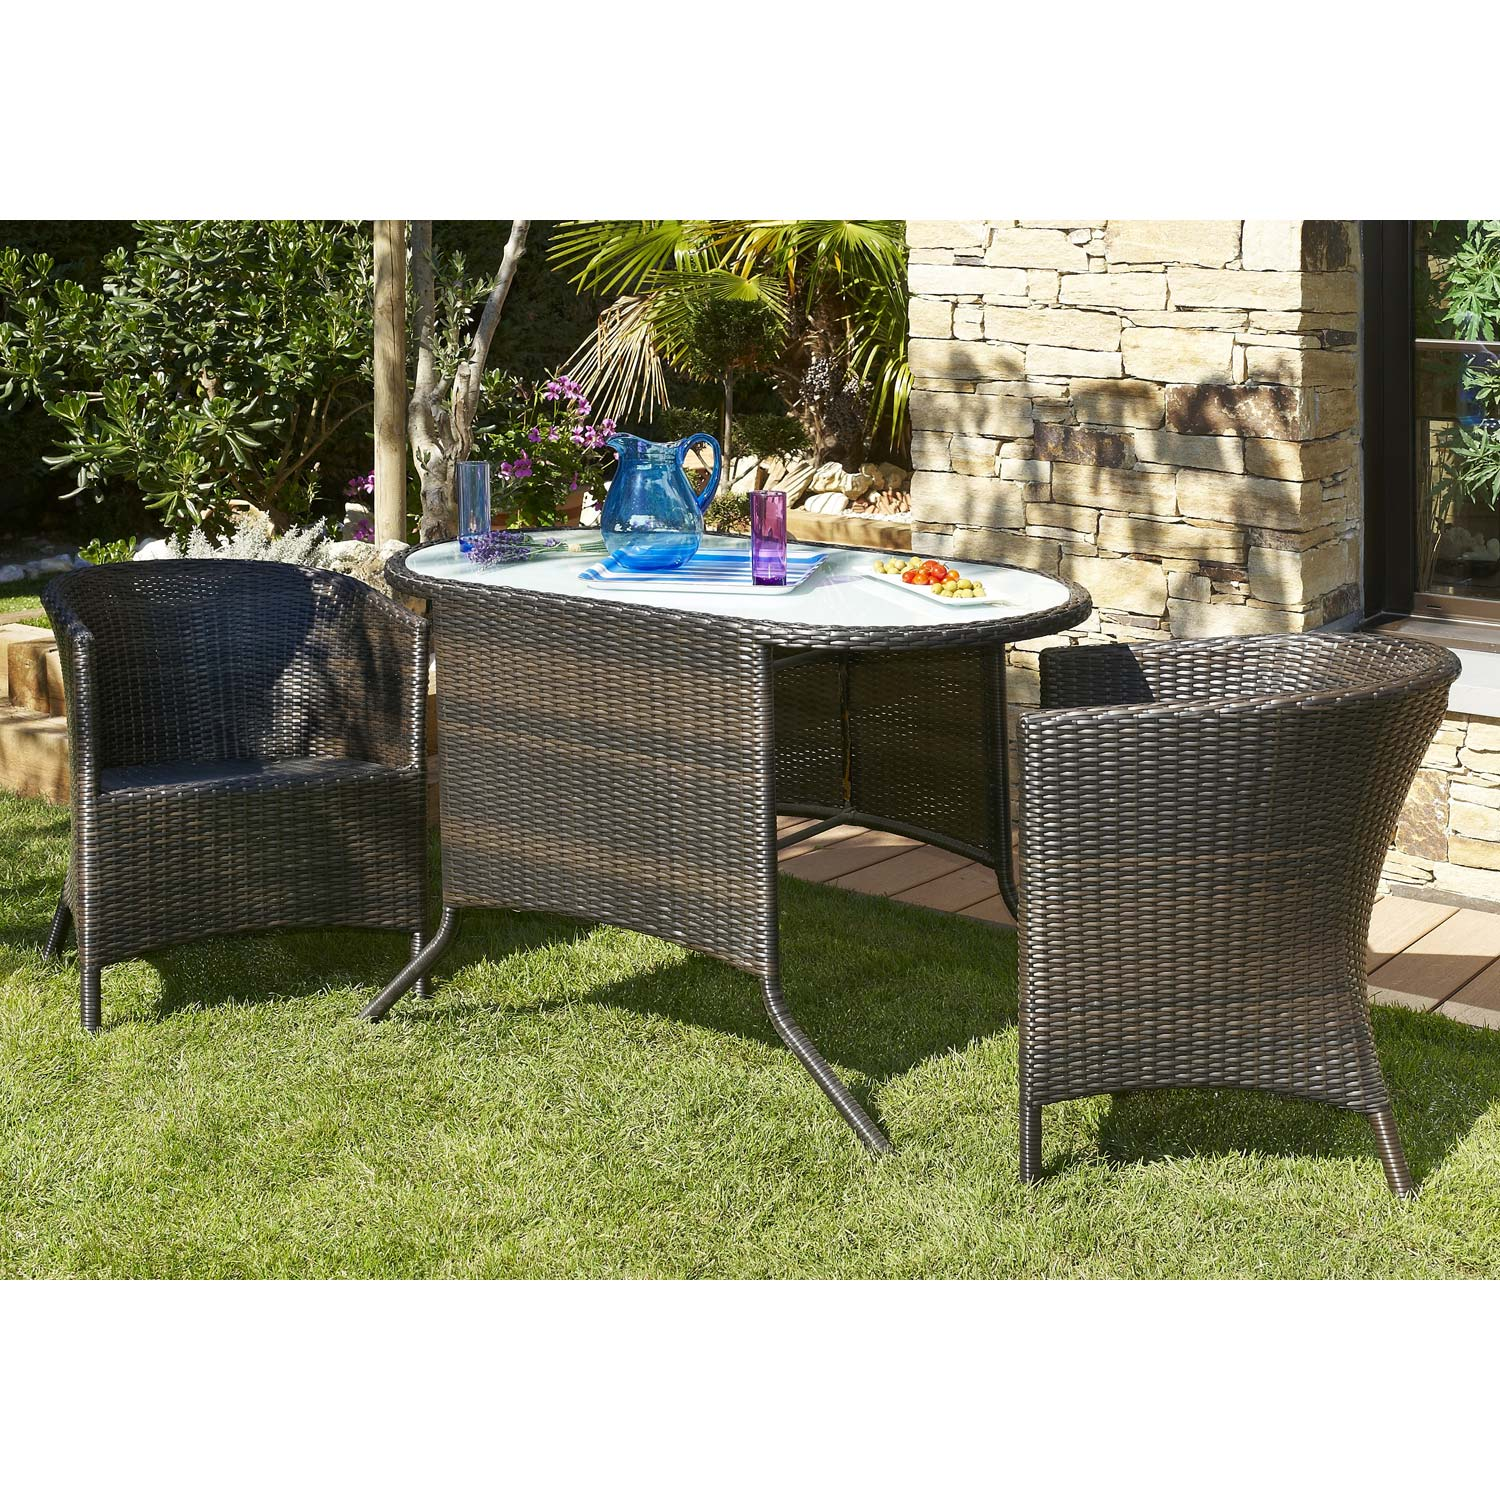 salon de jardin duo r sine tress e marron 1 table 2 fauteuils leroy merlin. Black Bedroom Furniture Sets. Home Design Ideas